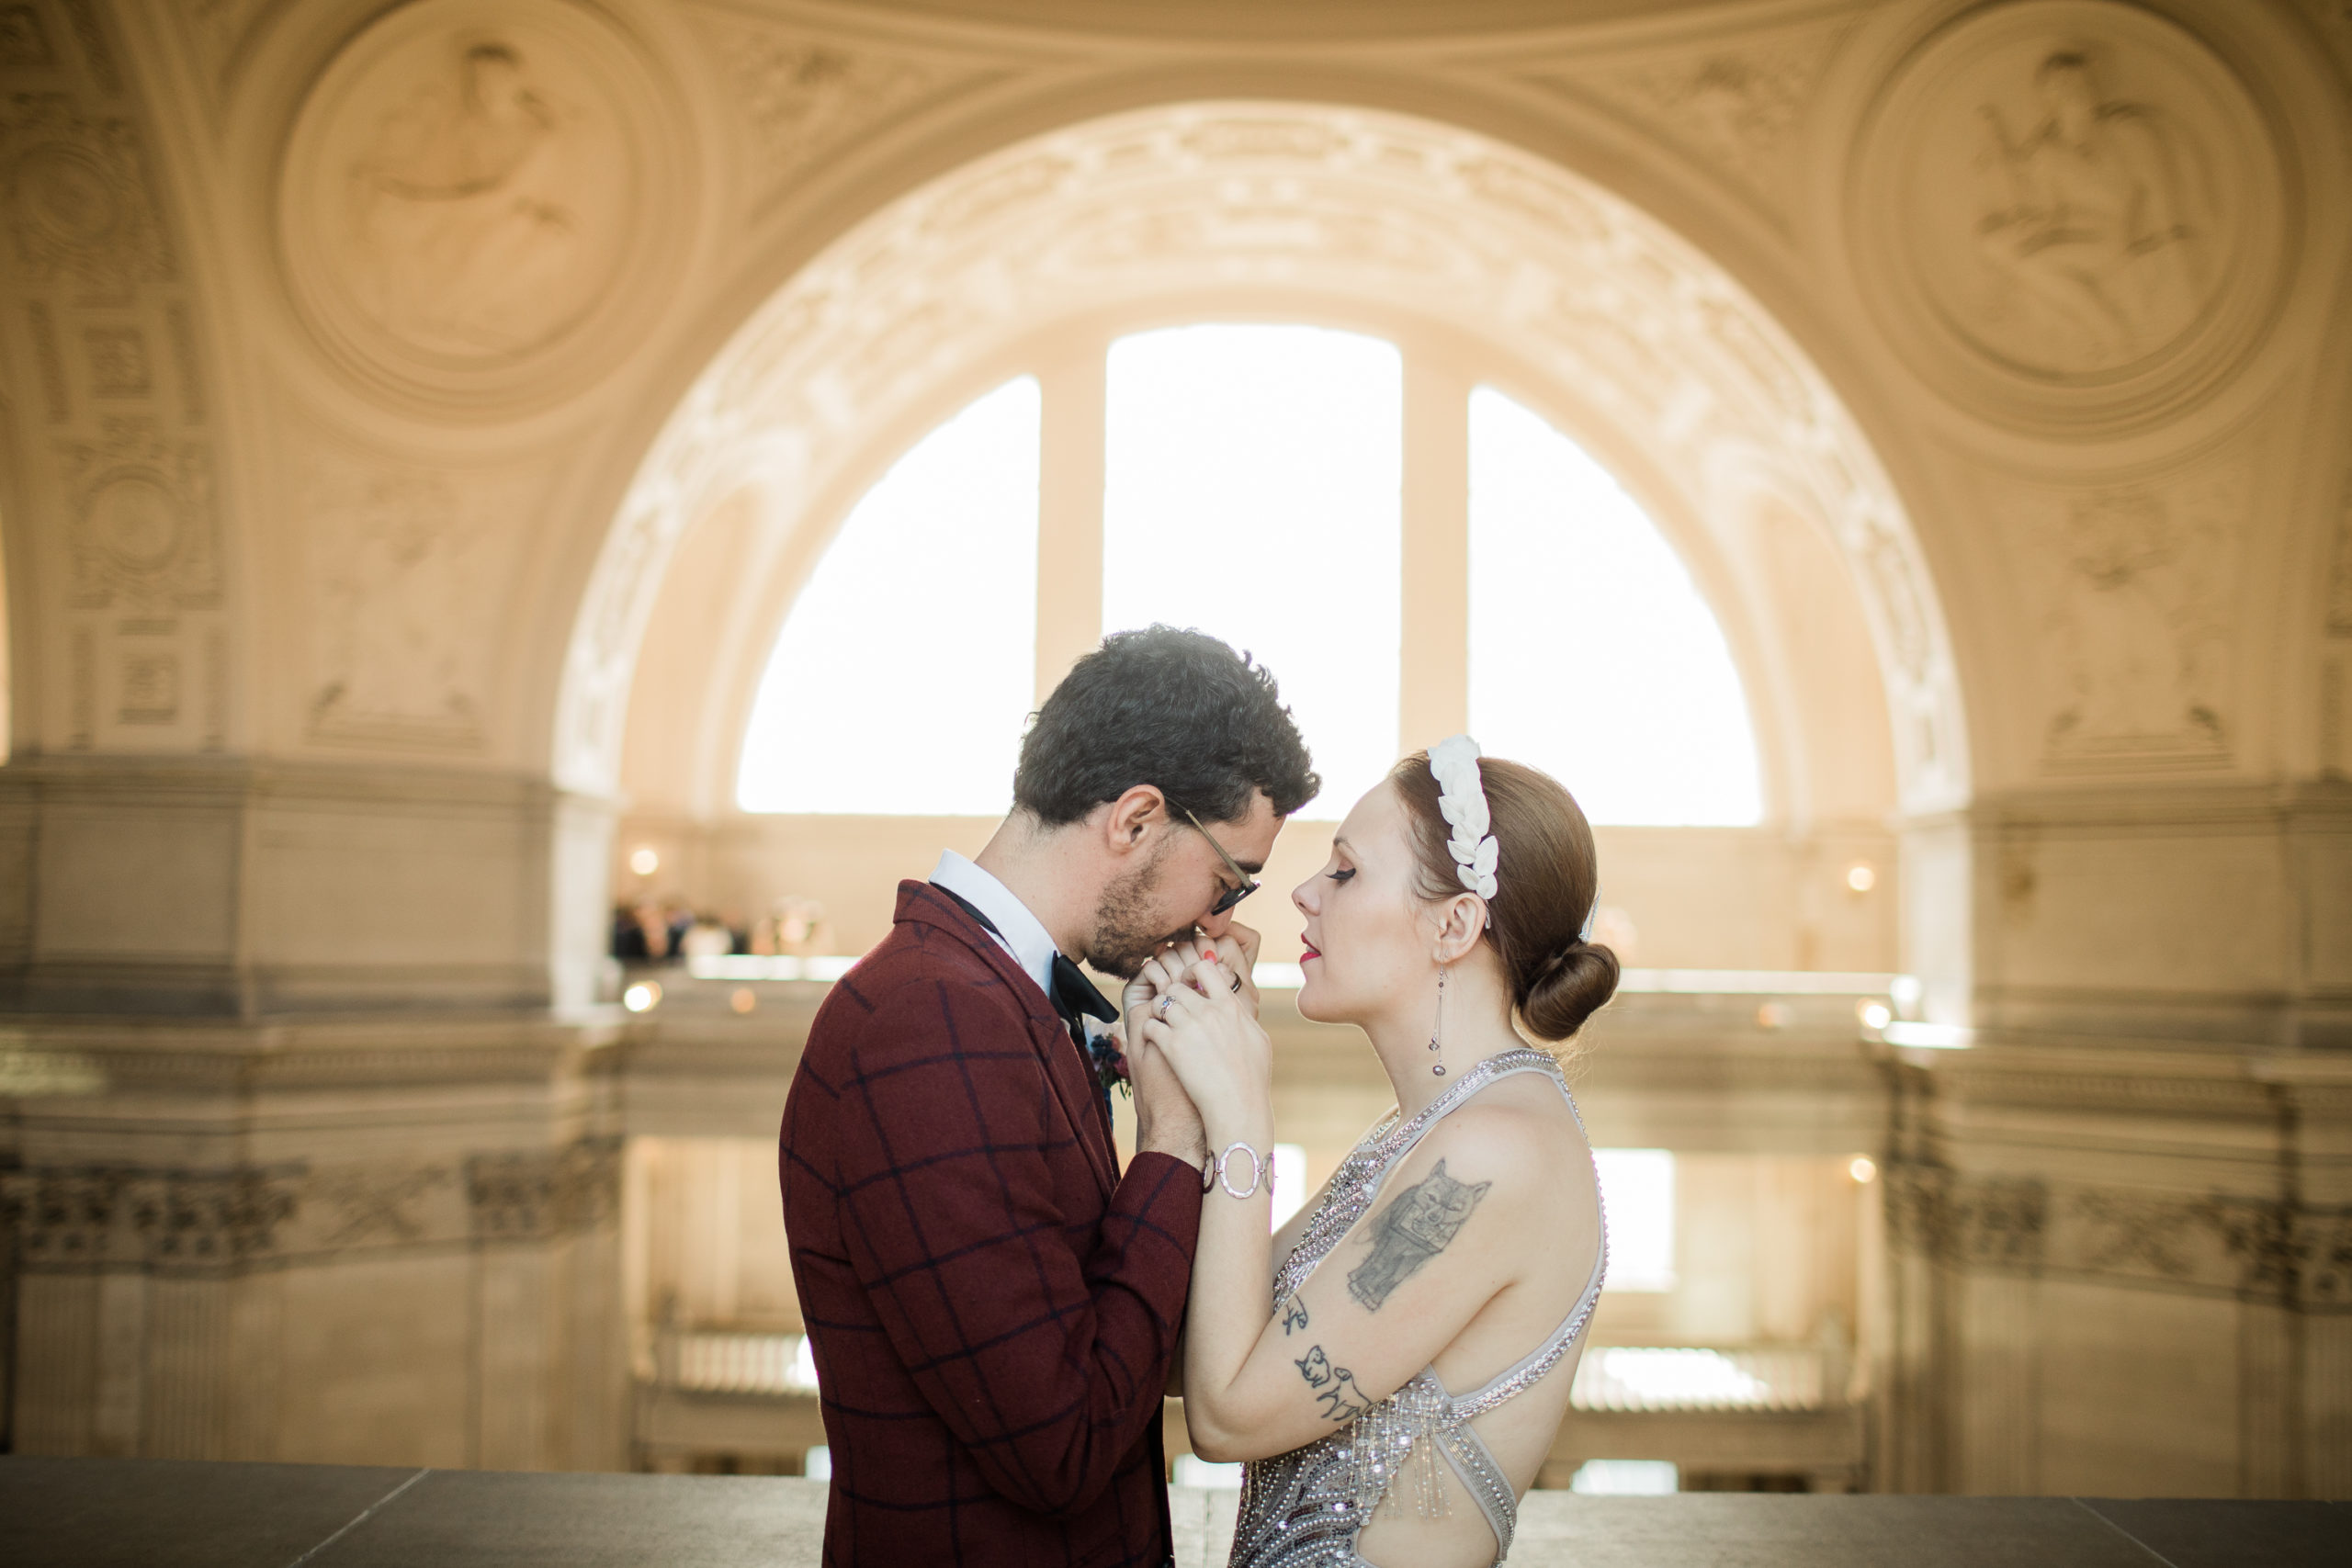 A wedding couple hold hands and kiss while at City Hall.